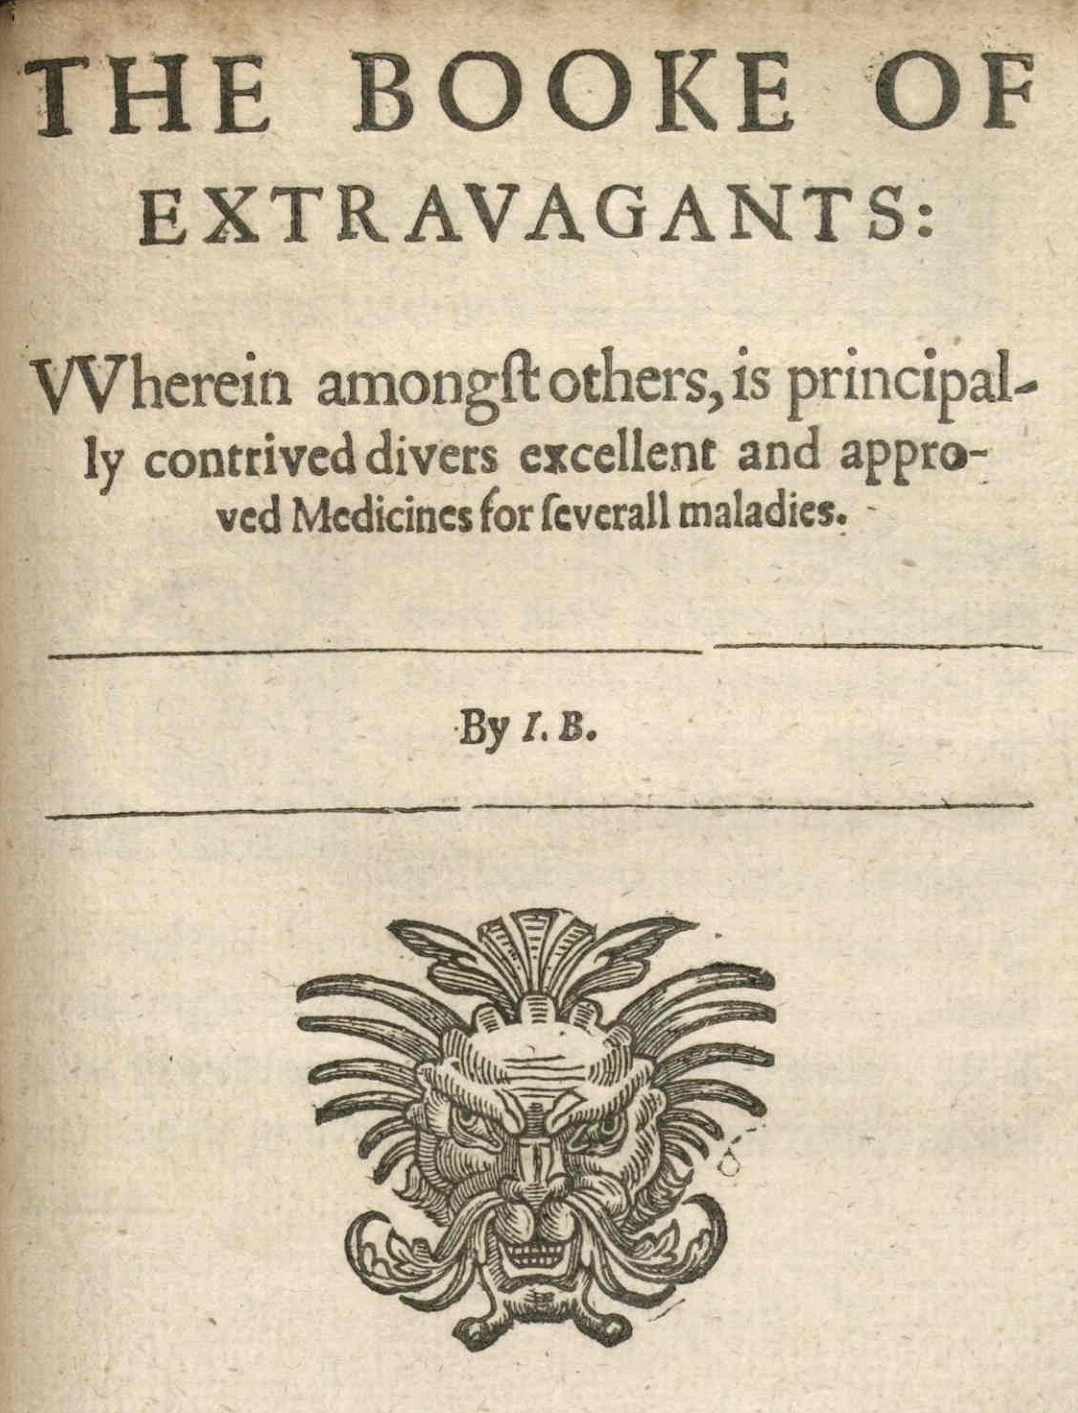 chapter titlepage: Extravagants, John Bate 'Mysteryes of Nature and Art'